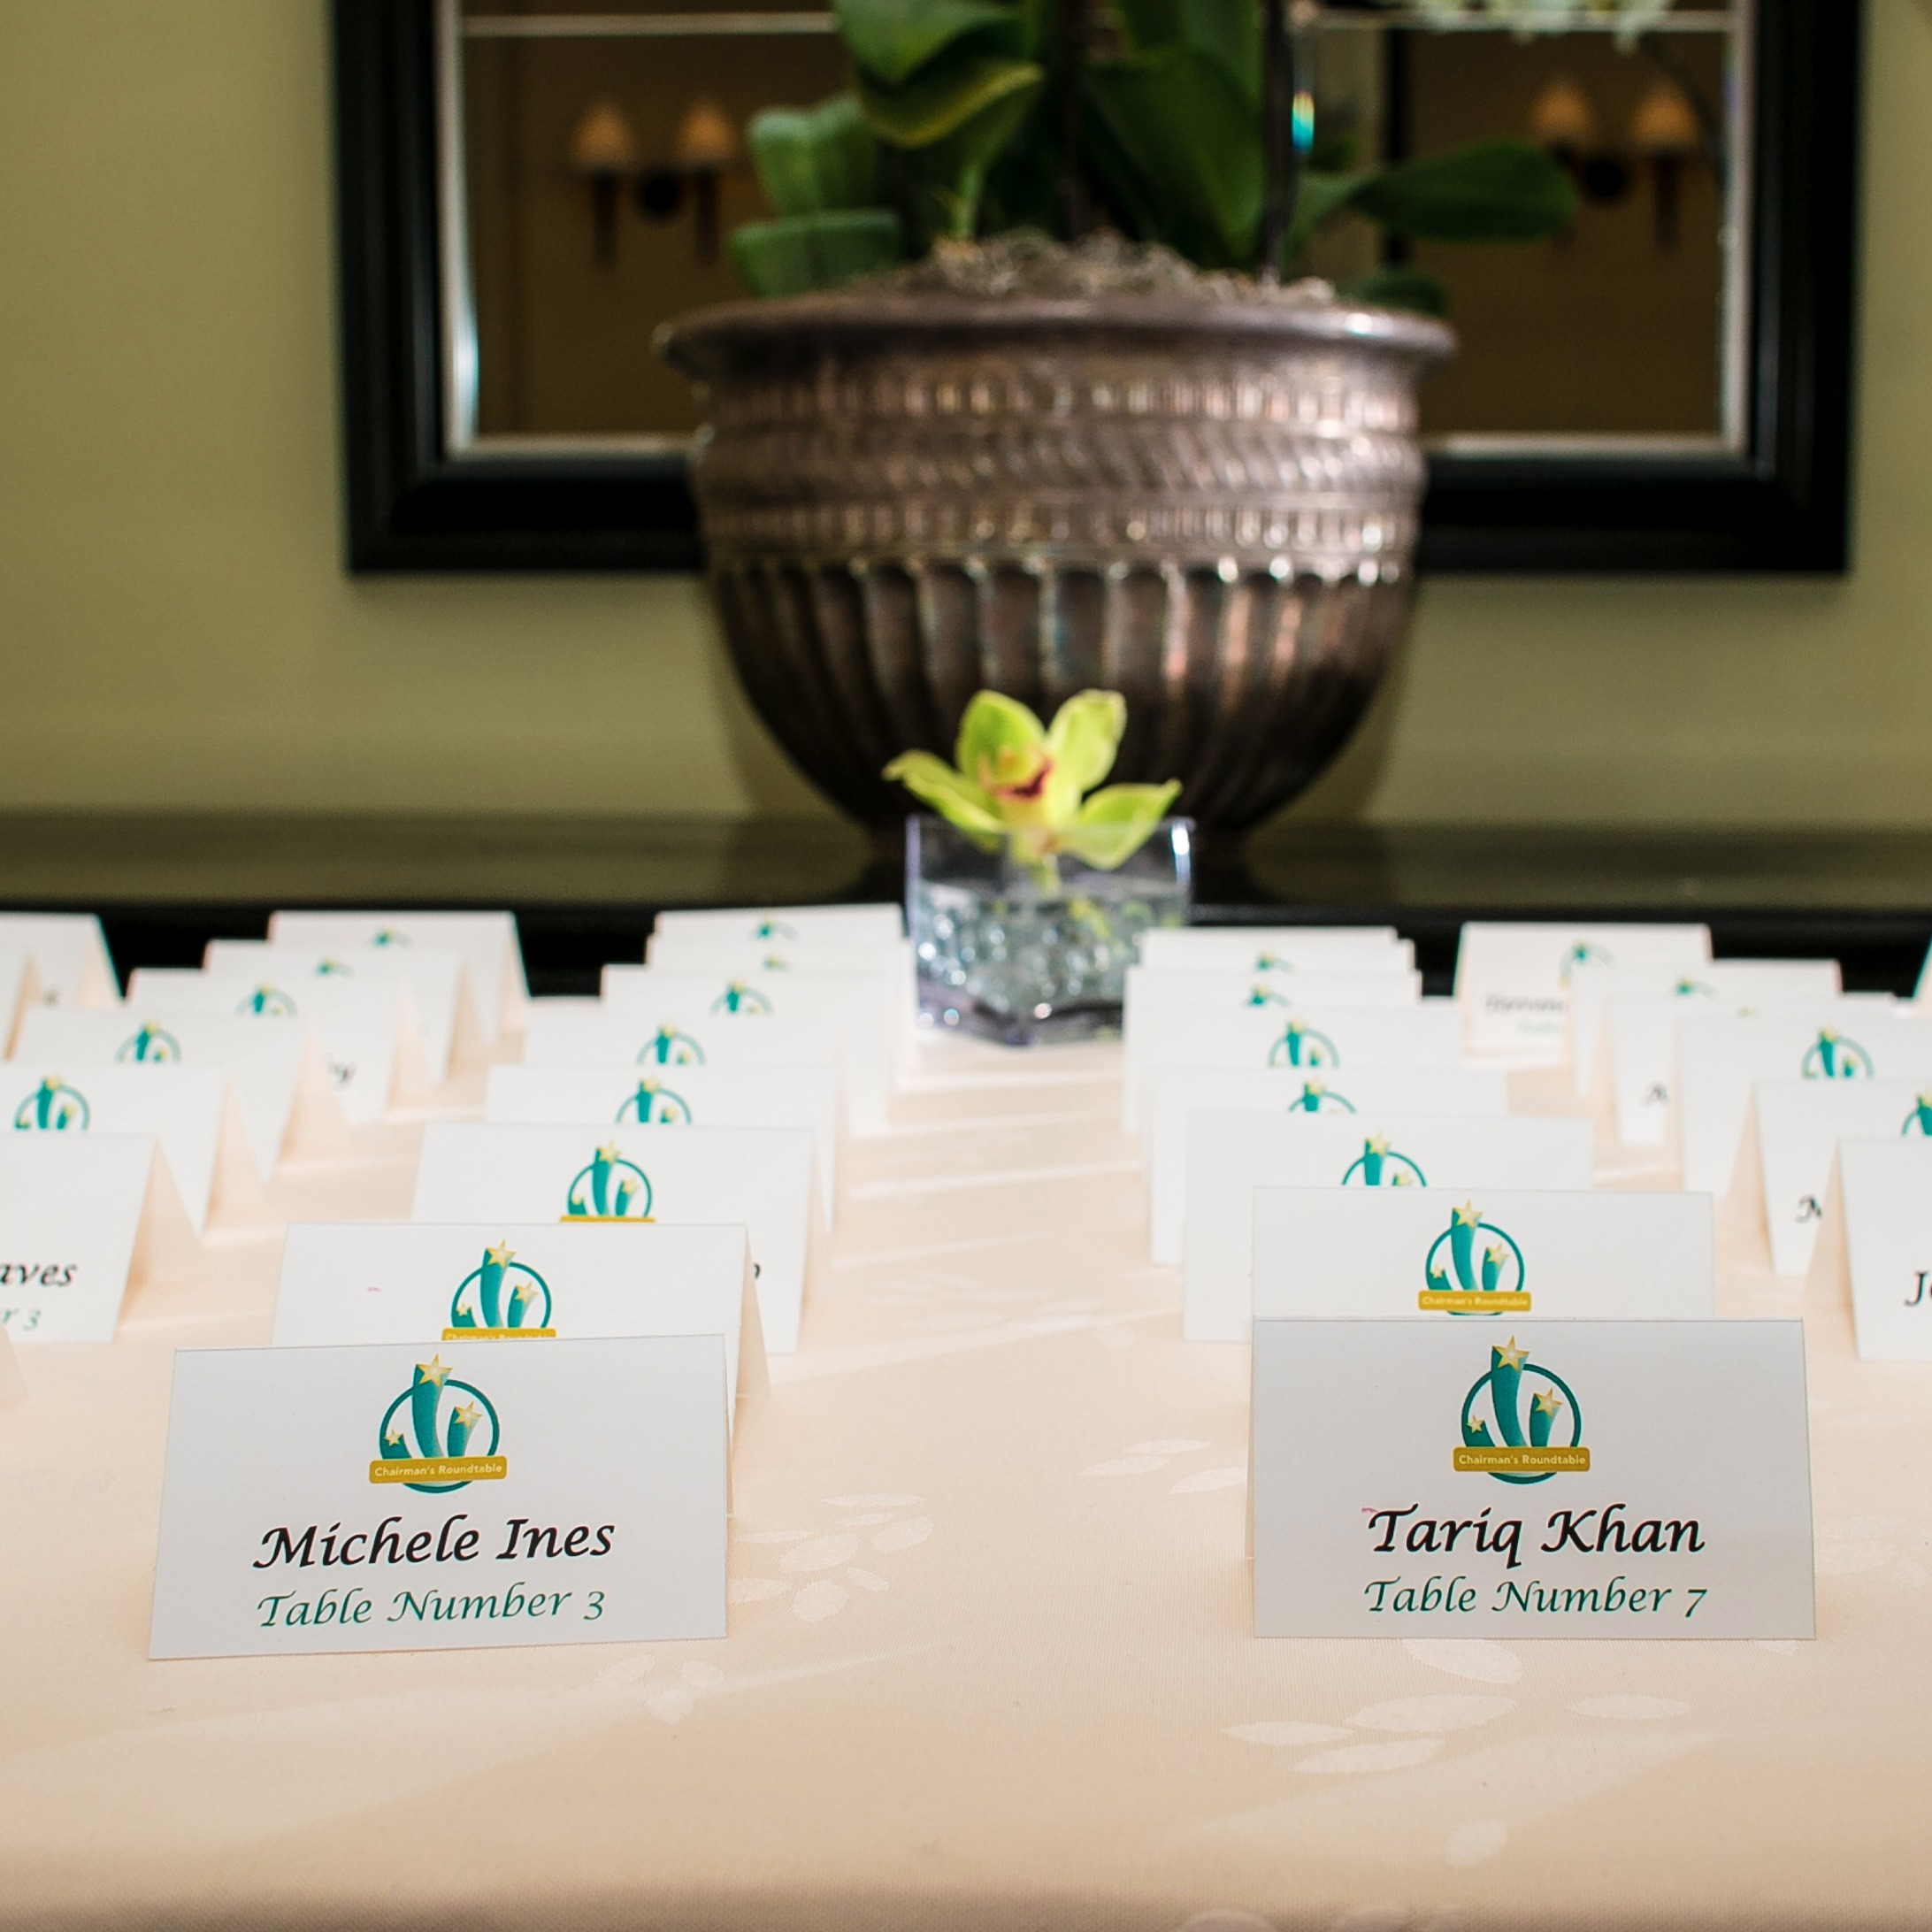 name tags used for corporate event planning services